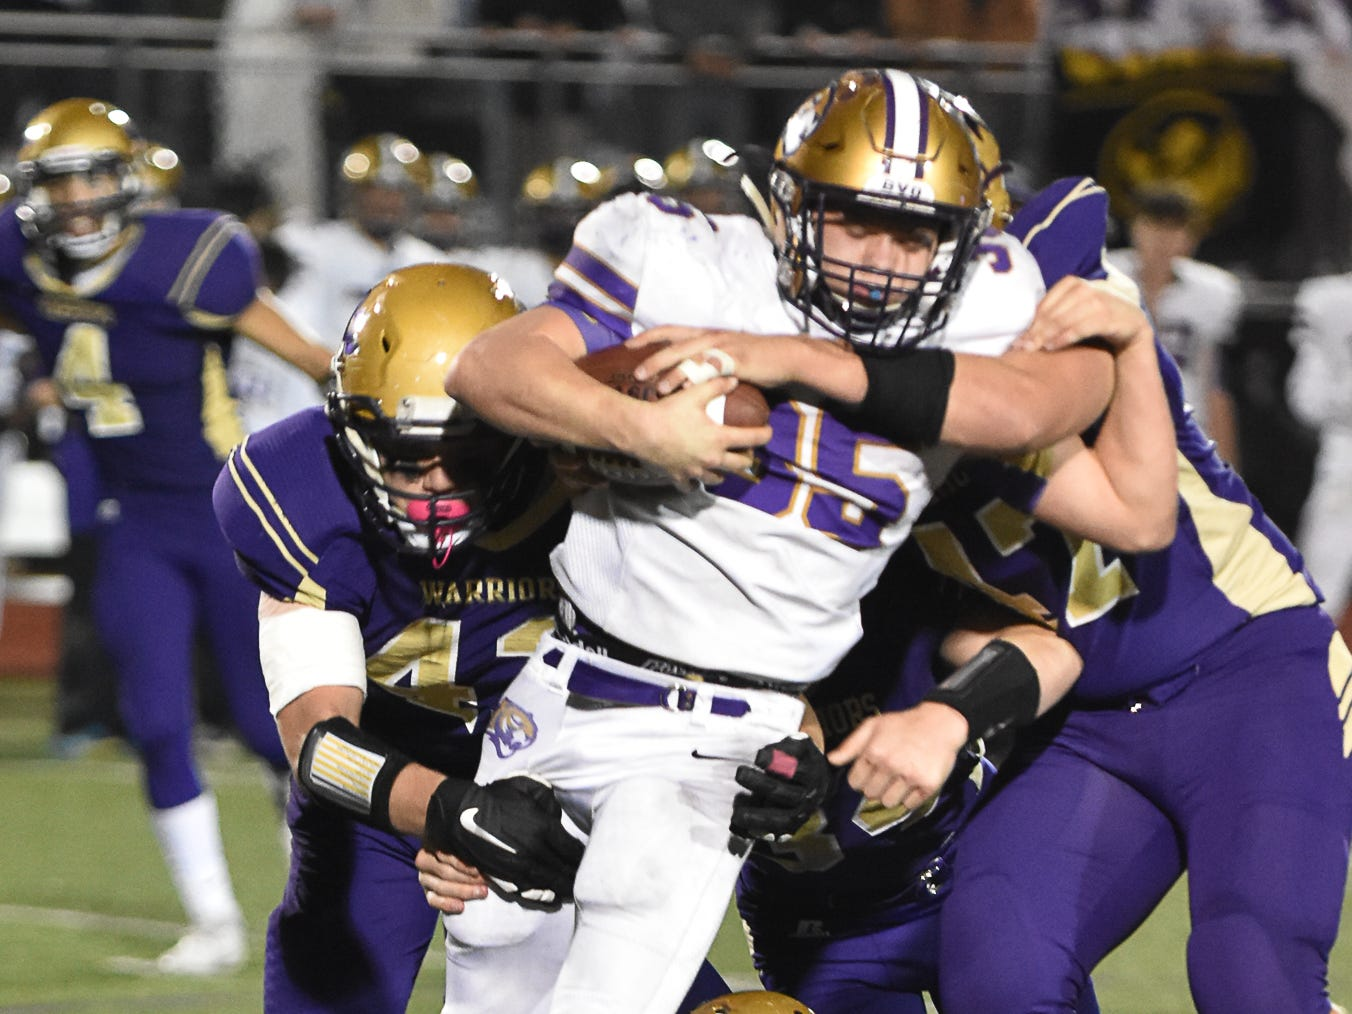 Norwalk defenders tackle Spencer's Isaiah Spencer during a first-round playoff game Friday in Norwalk. Spencer ended Norwalk's season Oct. 26, 2018, with a 24-20 win in the first round of the Class 3A playoffs.